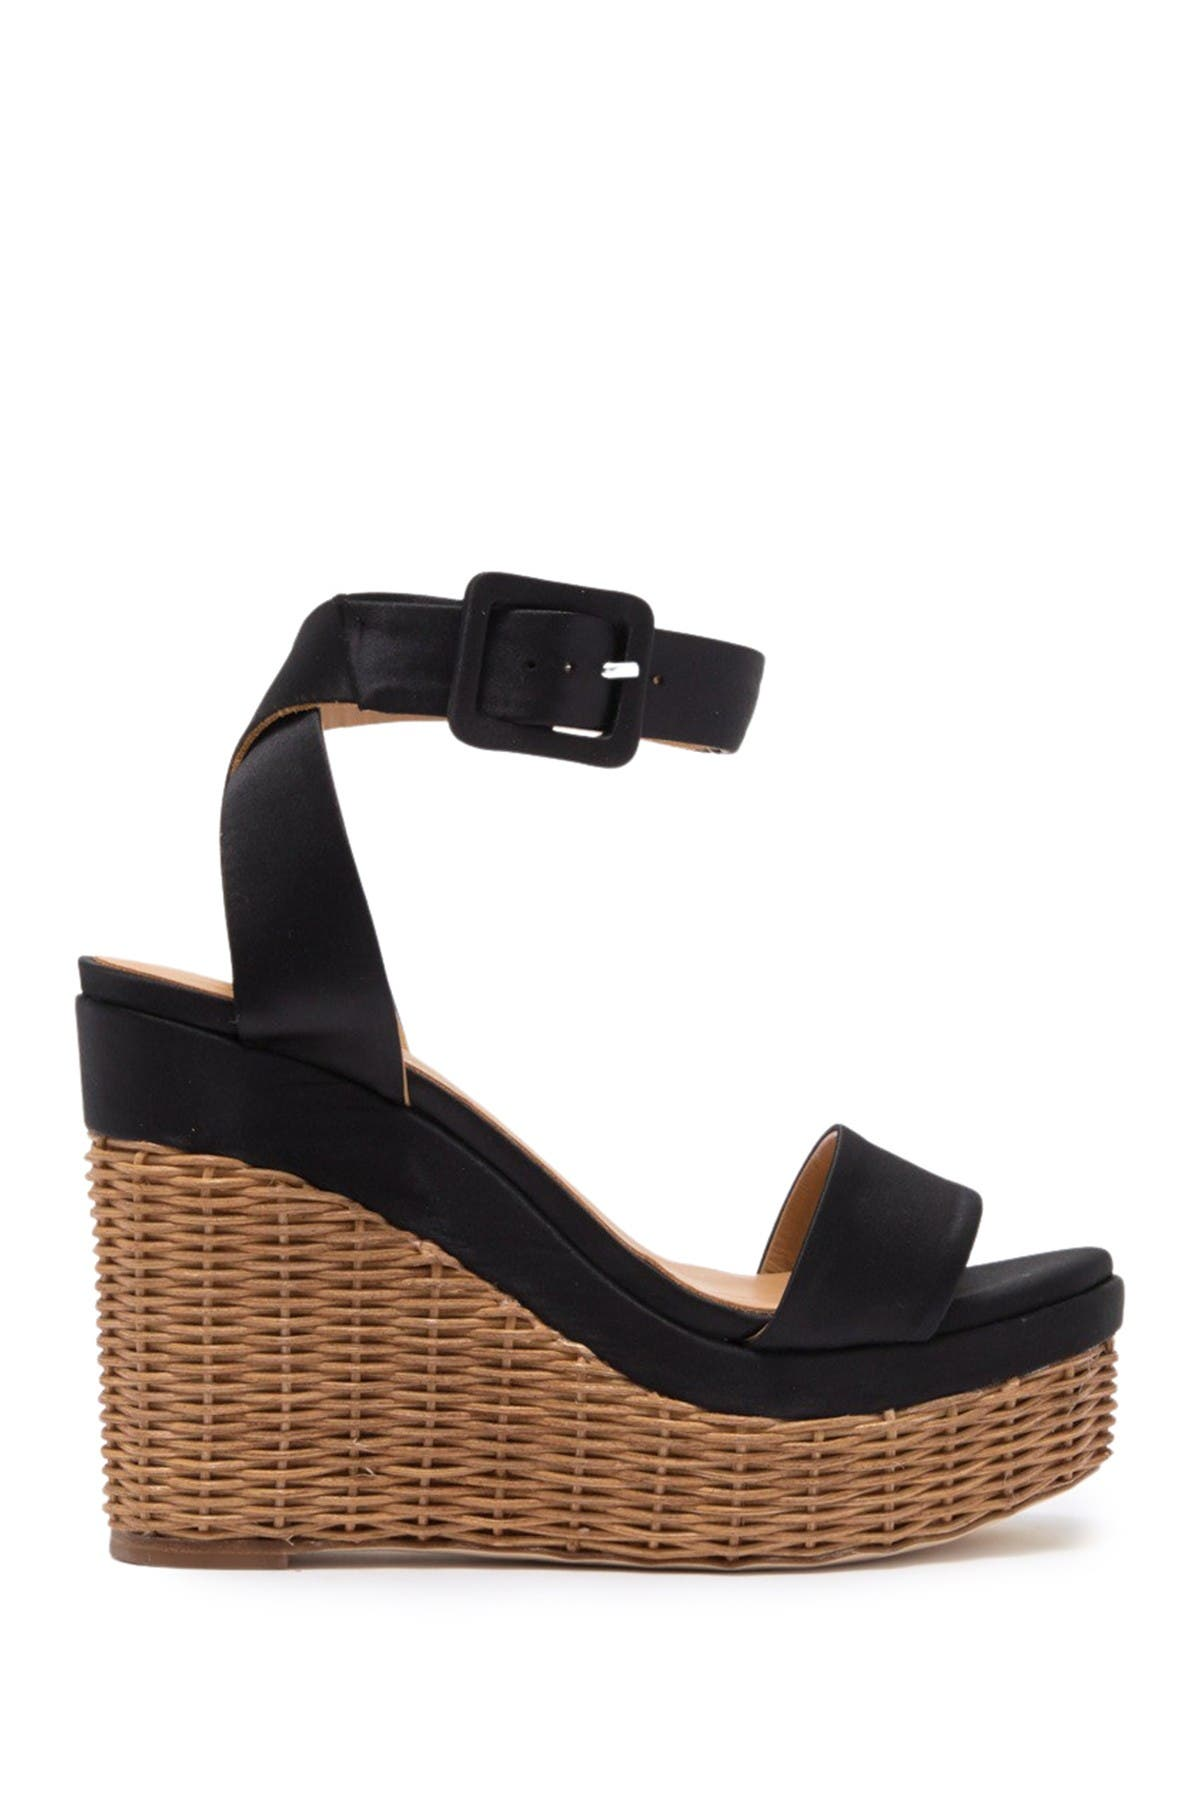 Image of Paloma Barcelo Salvadora Basket Weave Wedge Sandal